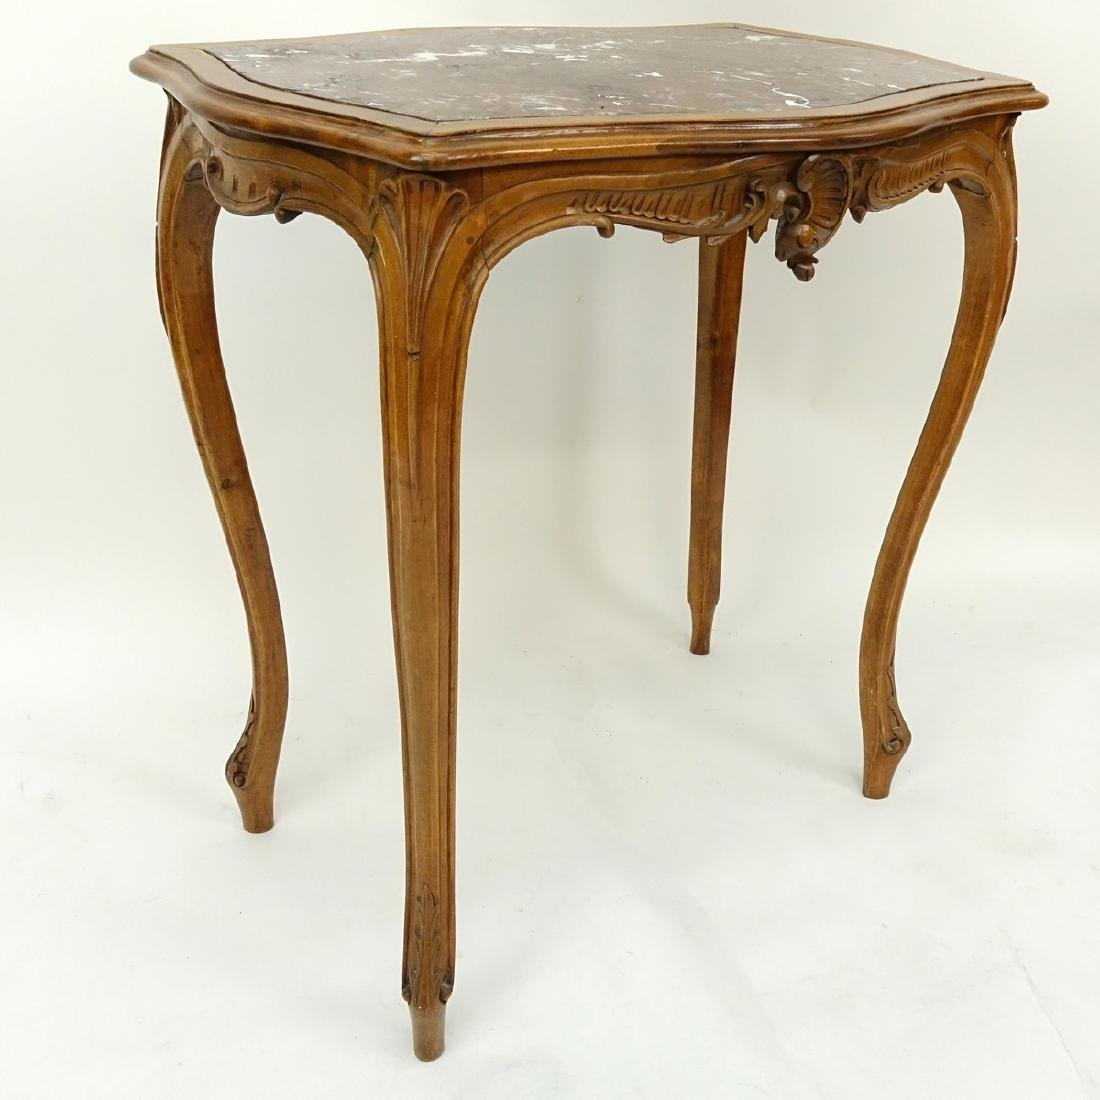 19/20th Century French Carved Wood Table with Marble